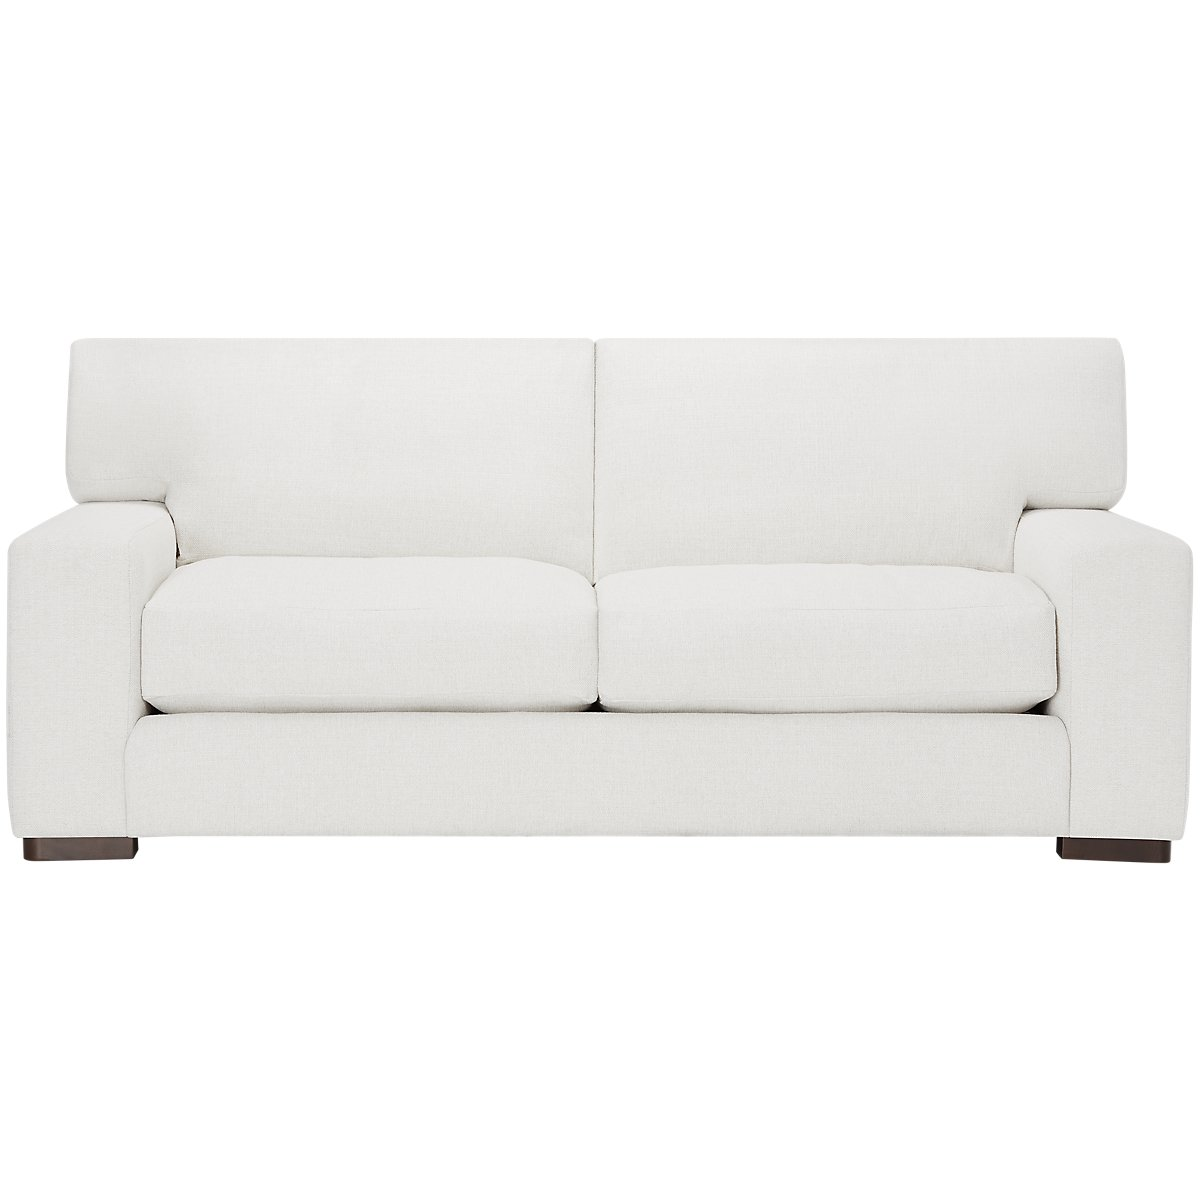 Veronica White Fabric Down Small Sofa